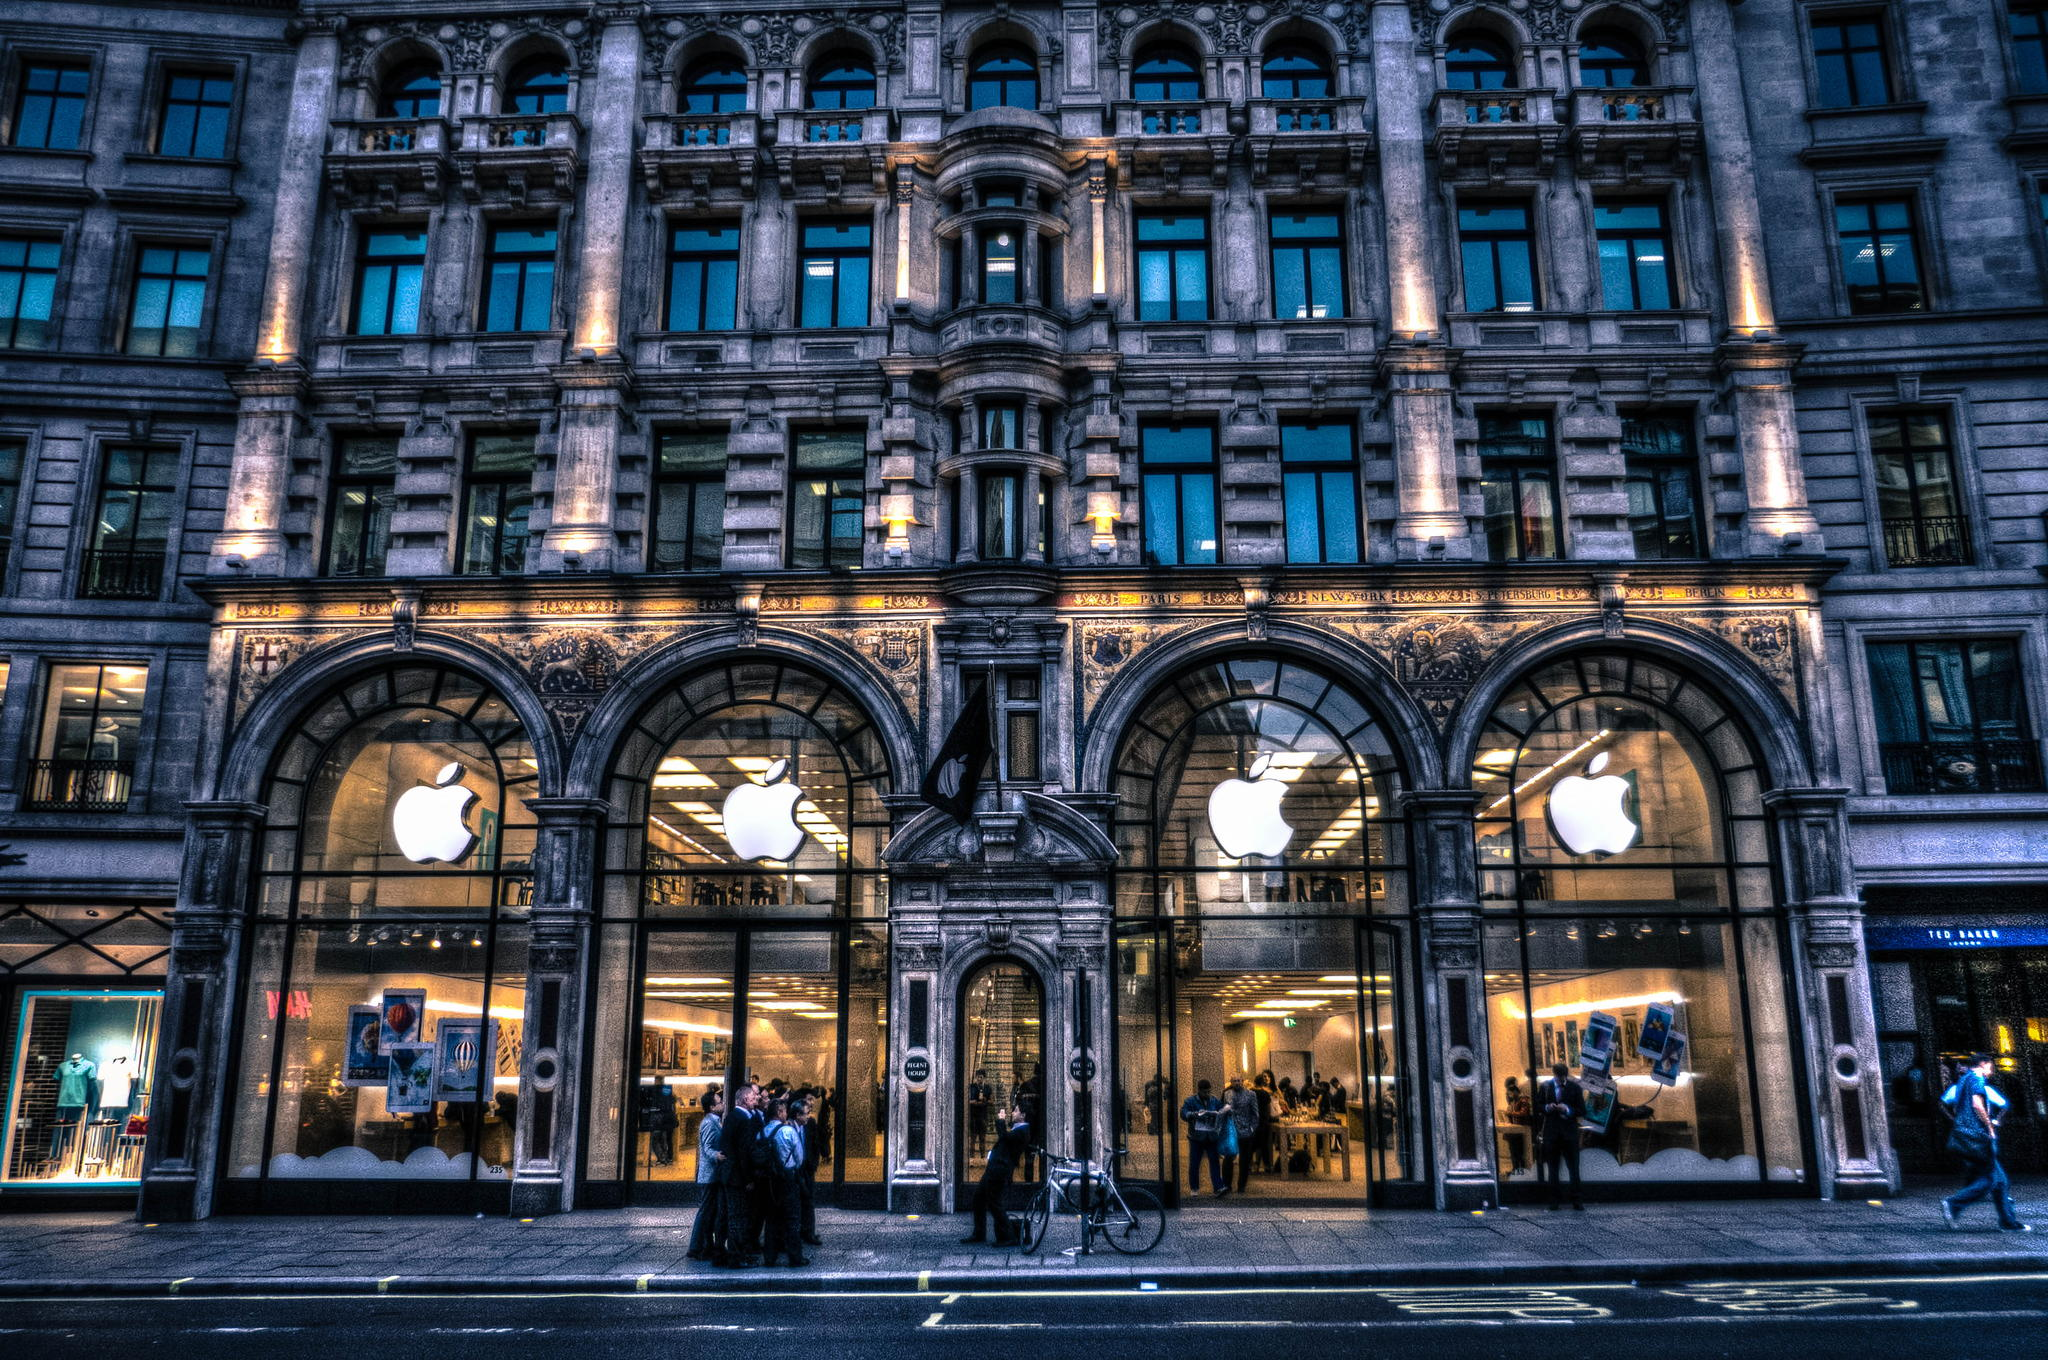 News Roundup: Apple Action Cam Patent, Controversial Photoshop Fail, and More